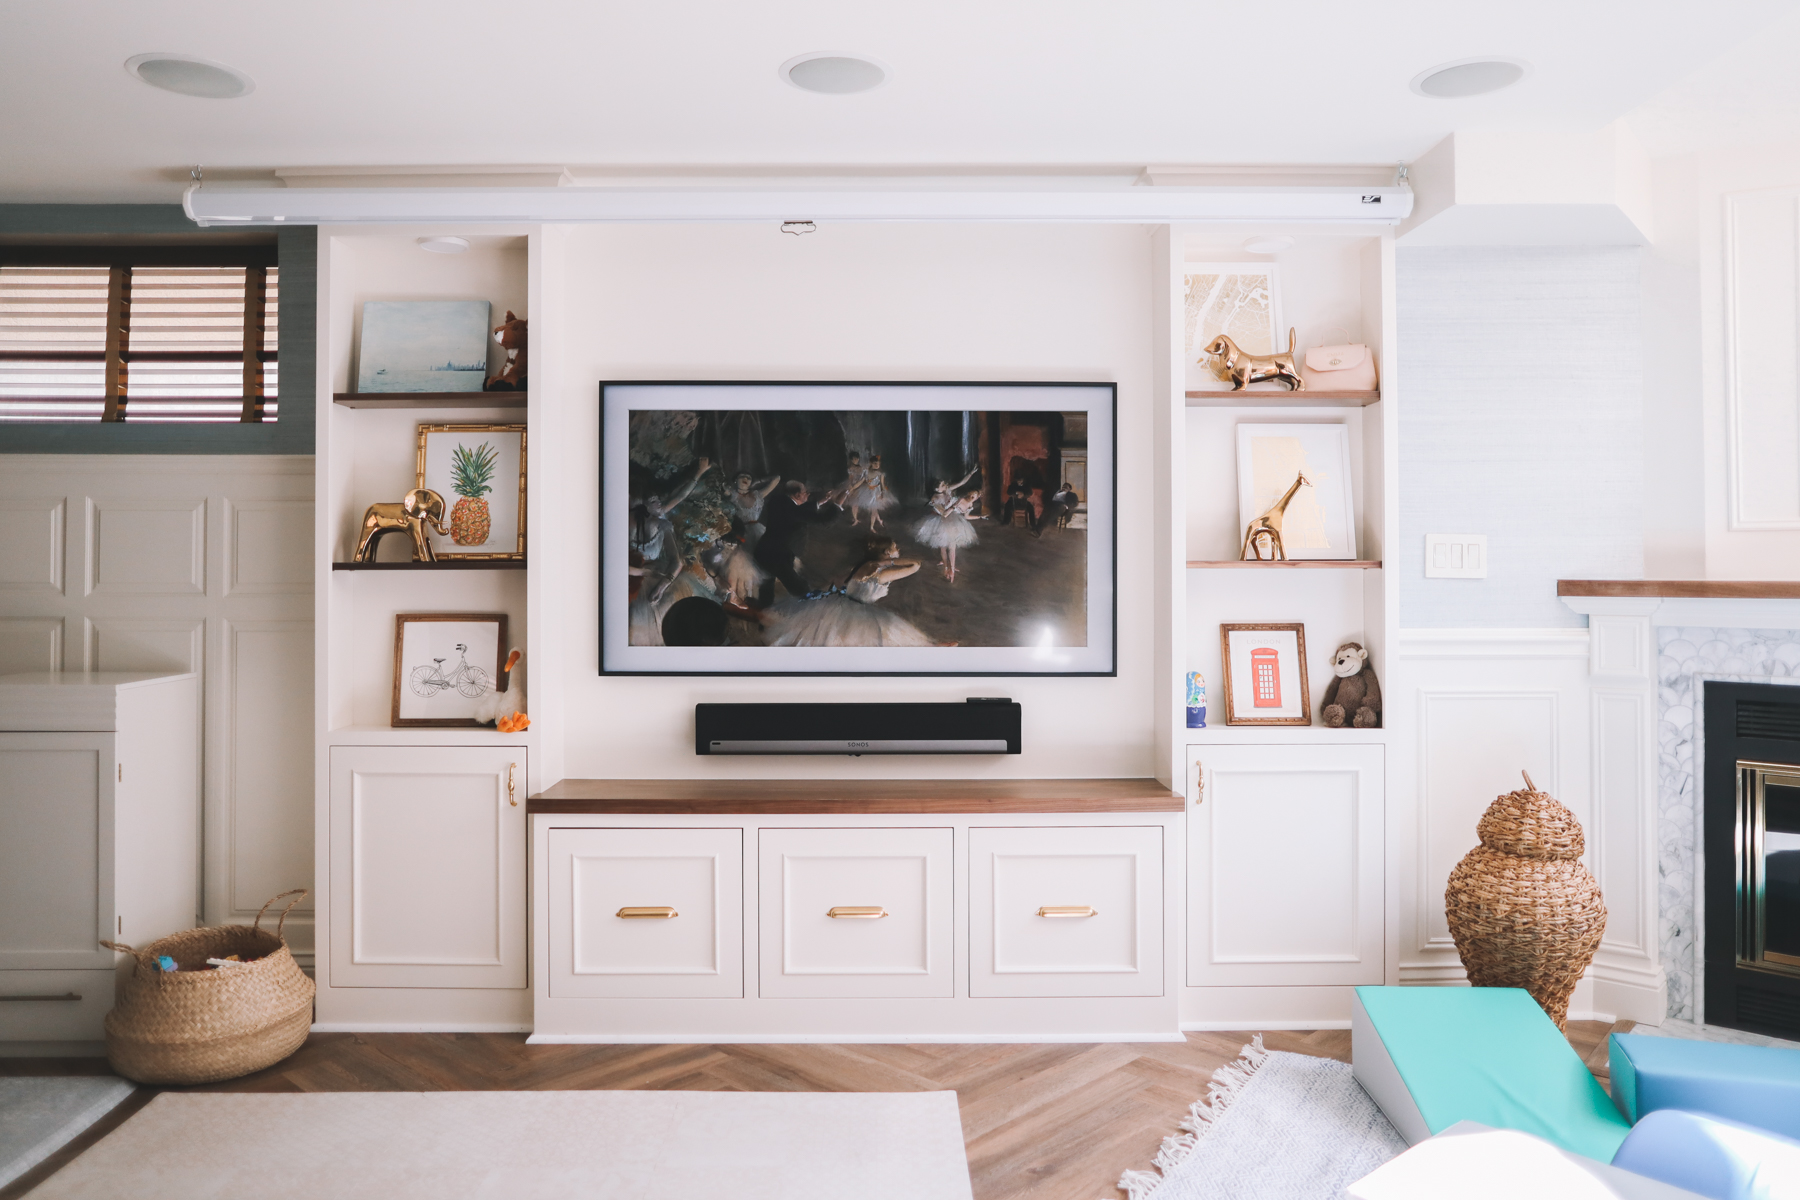 Samsung Frame Tv Review By Mitch Kelly In The City